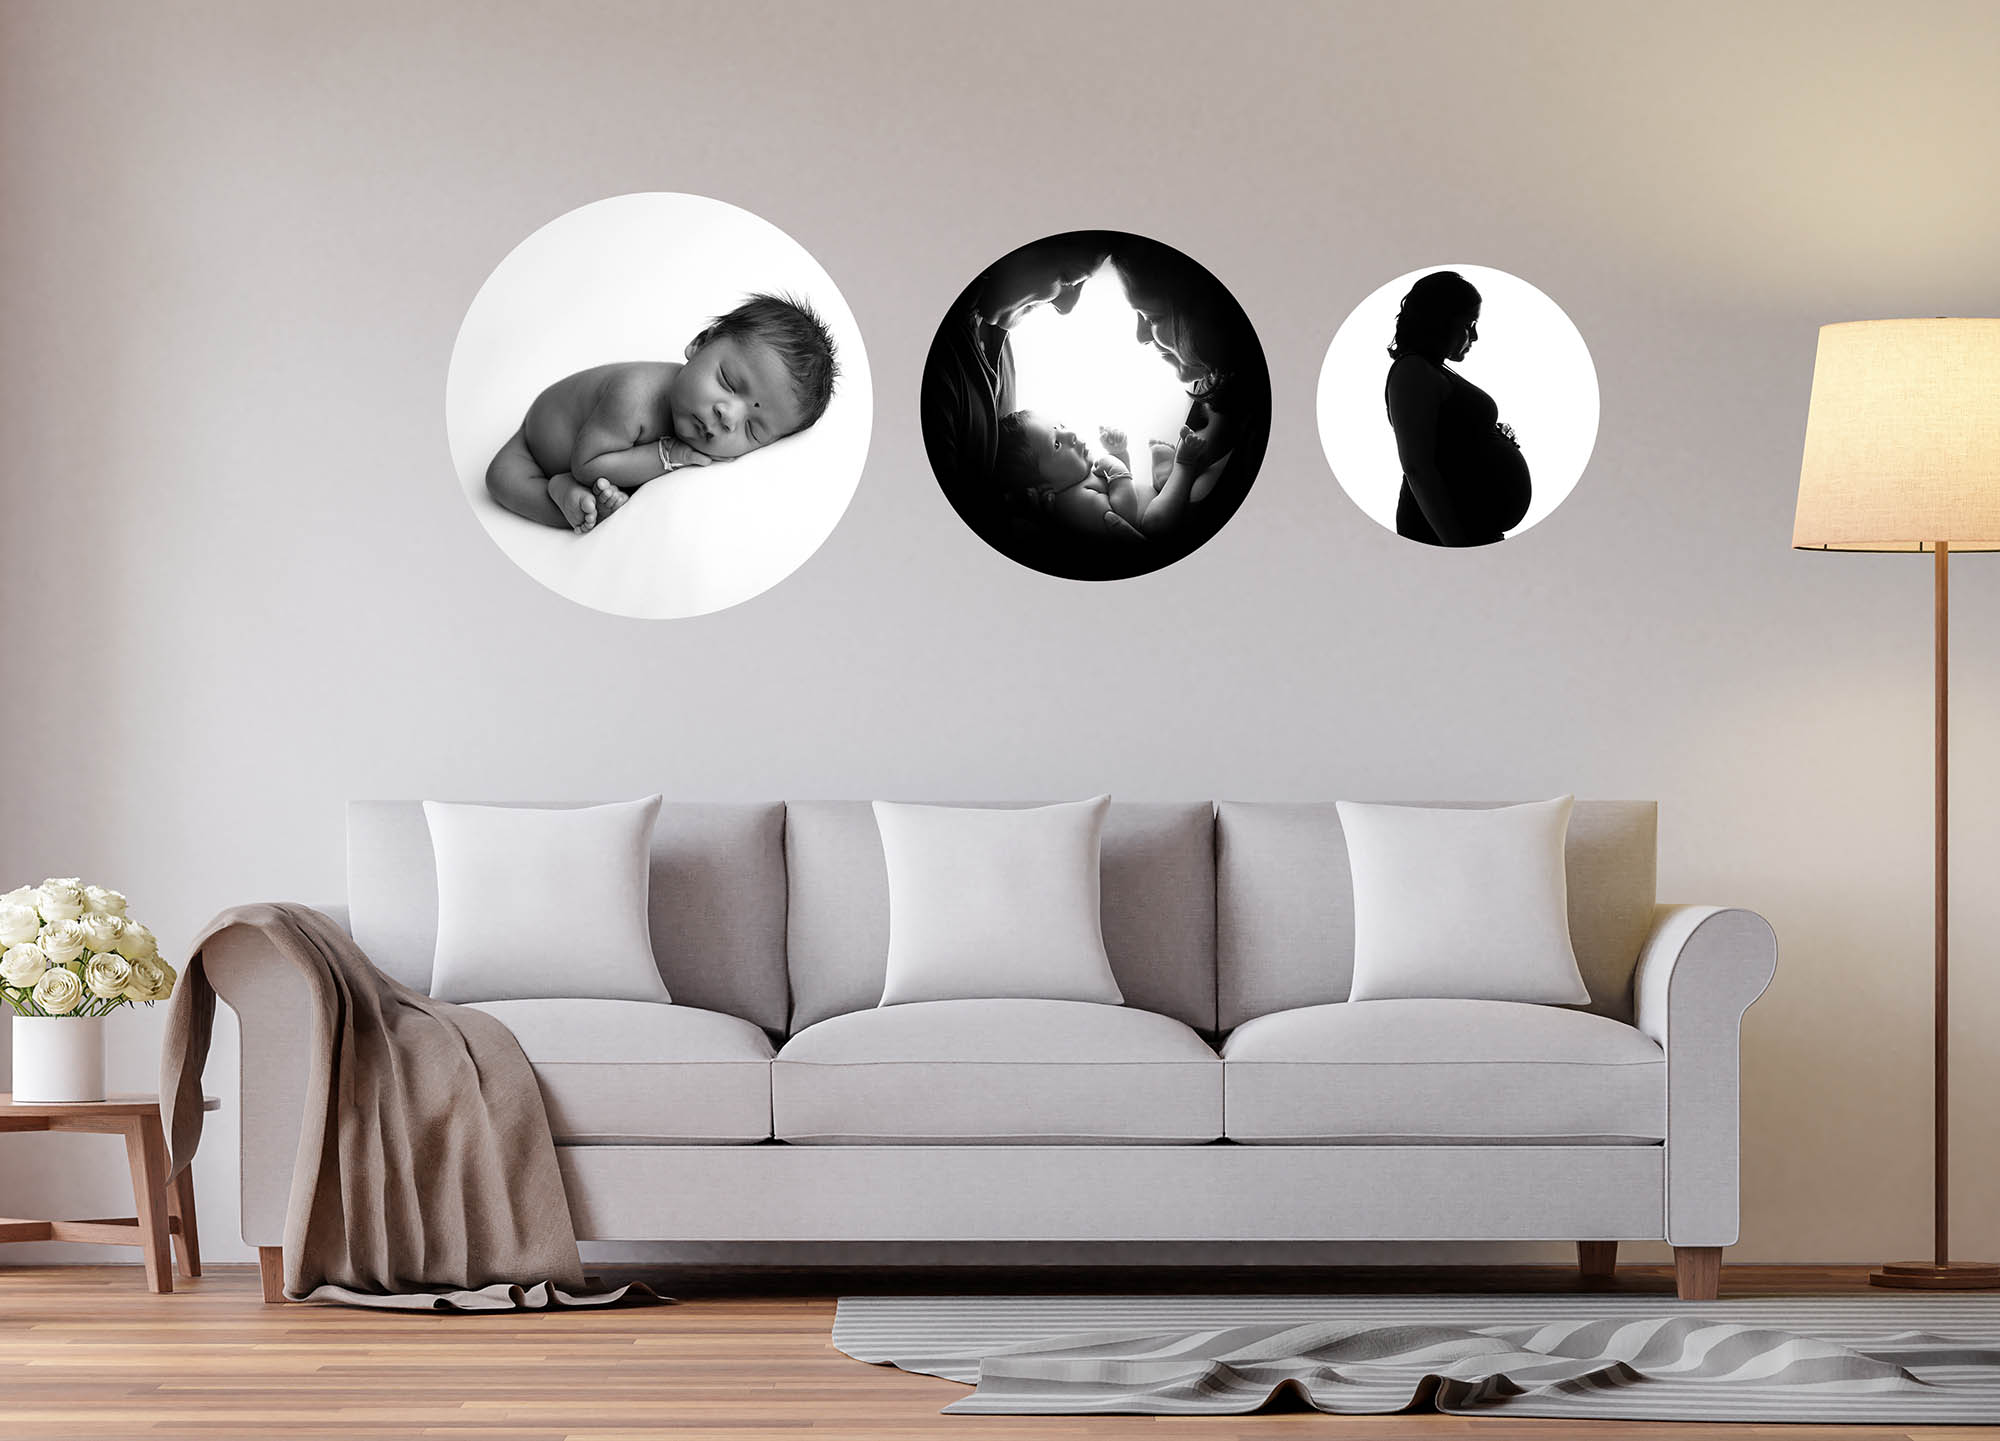 Scandanaviand living room witb circular black & white wall art, Images shown in the wall display are those taken by Glasgow Newborn Photoshoot